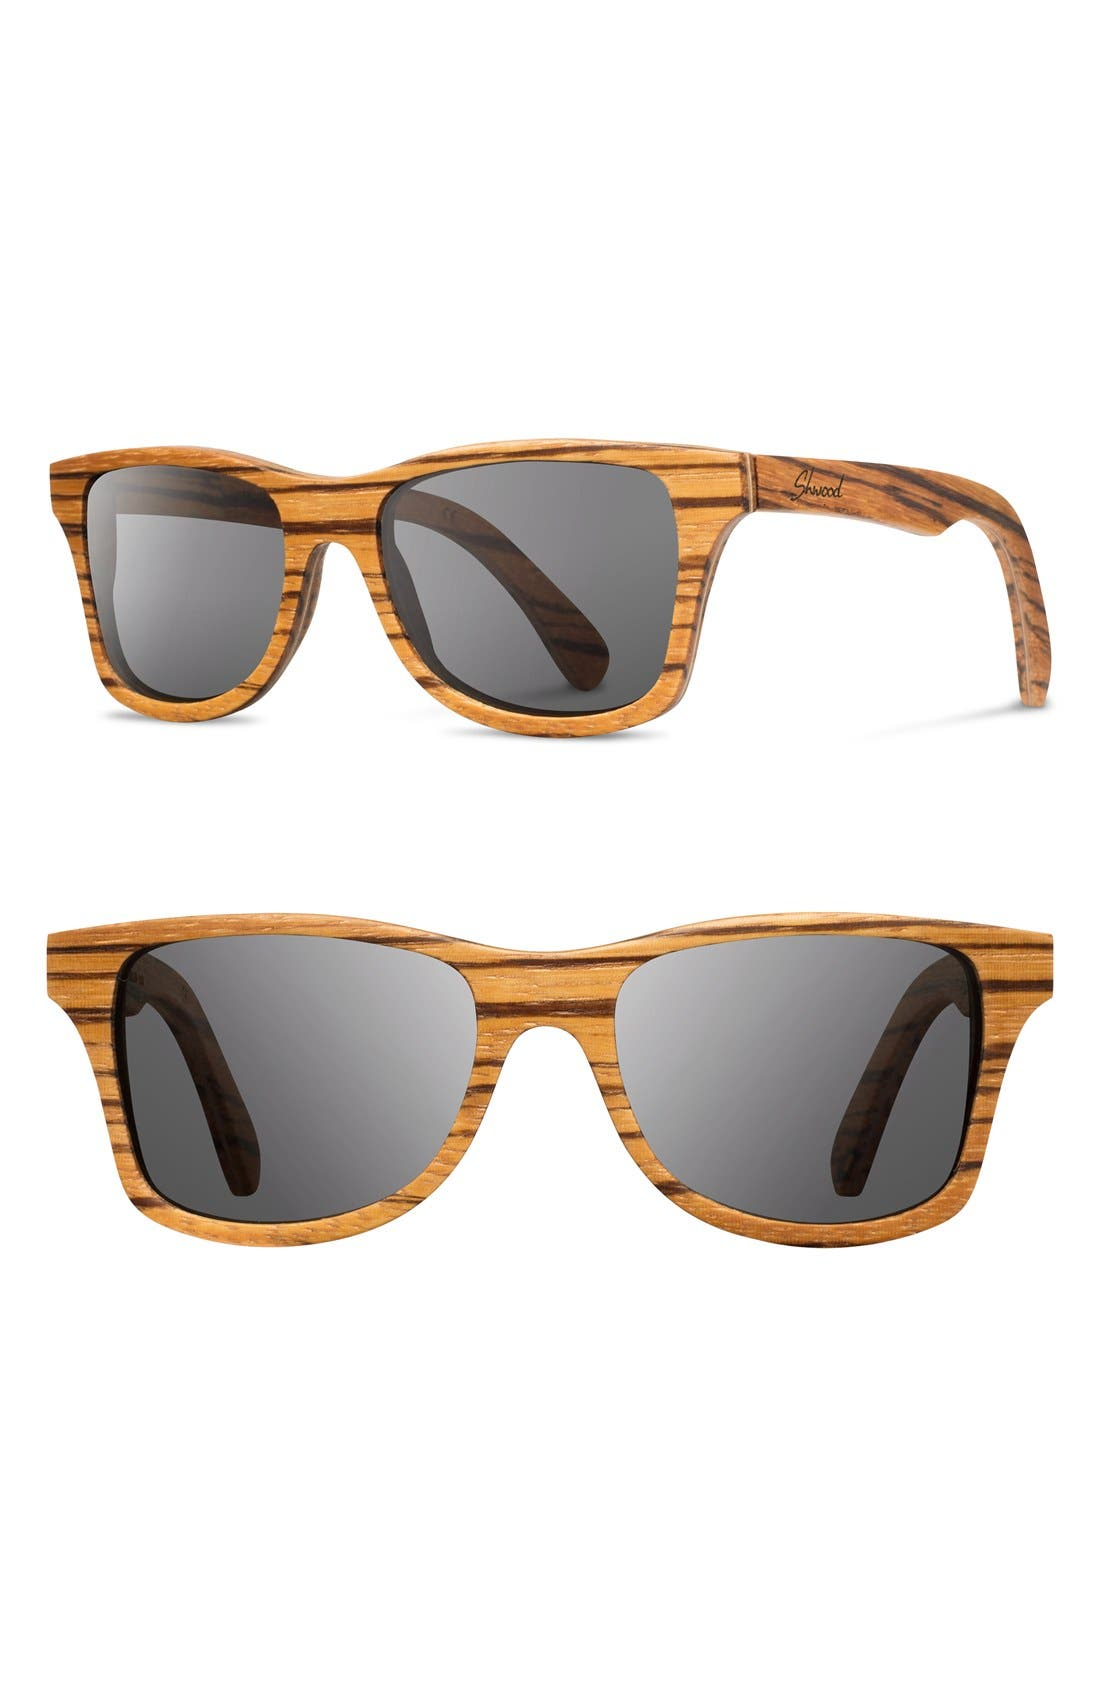 'Canby' 54mm Polarized Wood Sunglasses,                             Main thumbnail 1, color,                             Zebrawood/ Grey